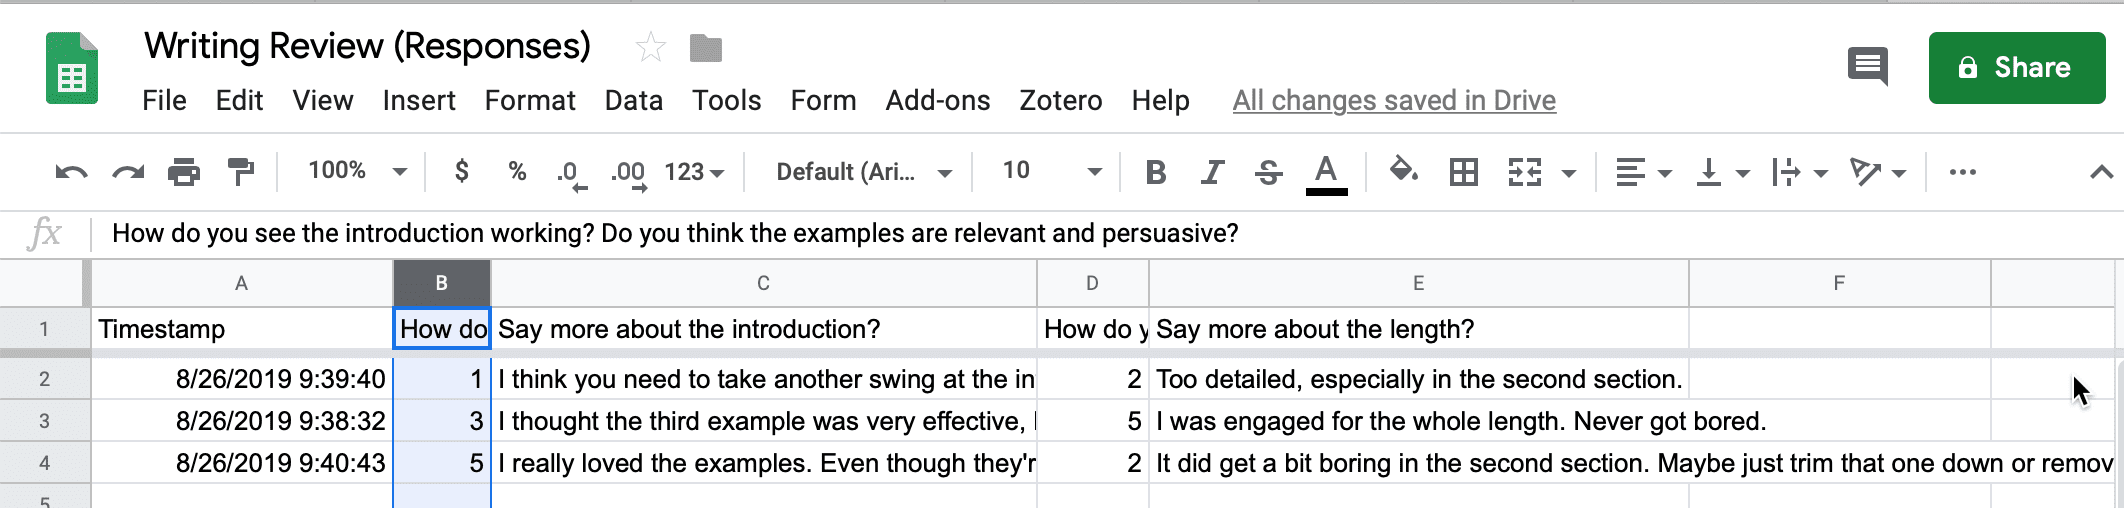 Screenshot of Google Spreadsheet of responses sorted by rating for one question.